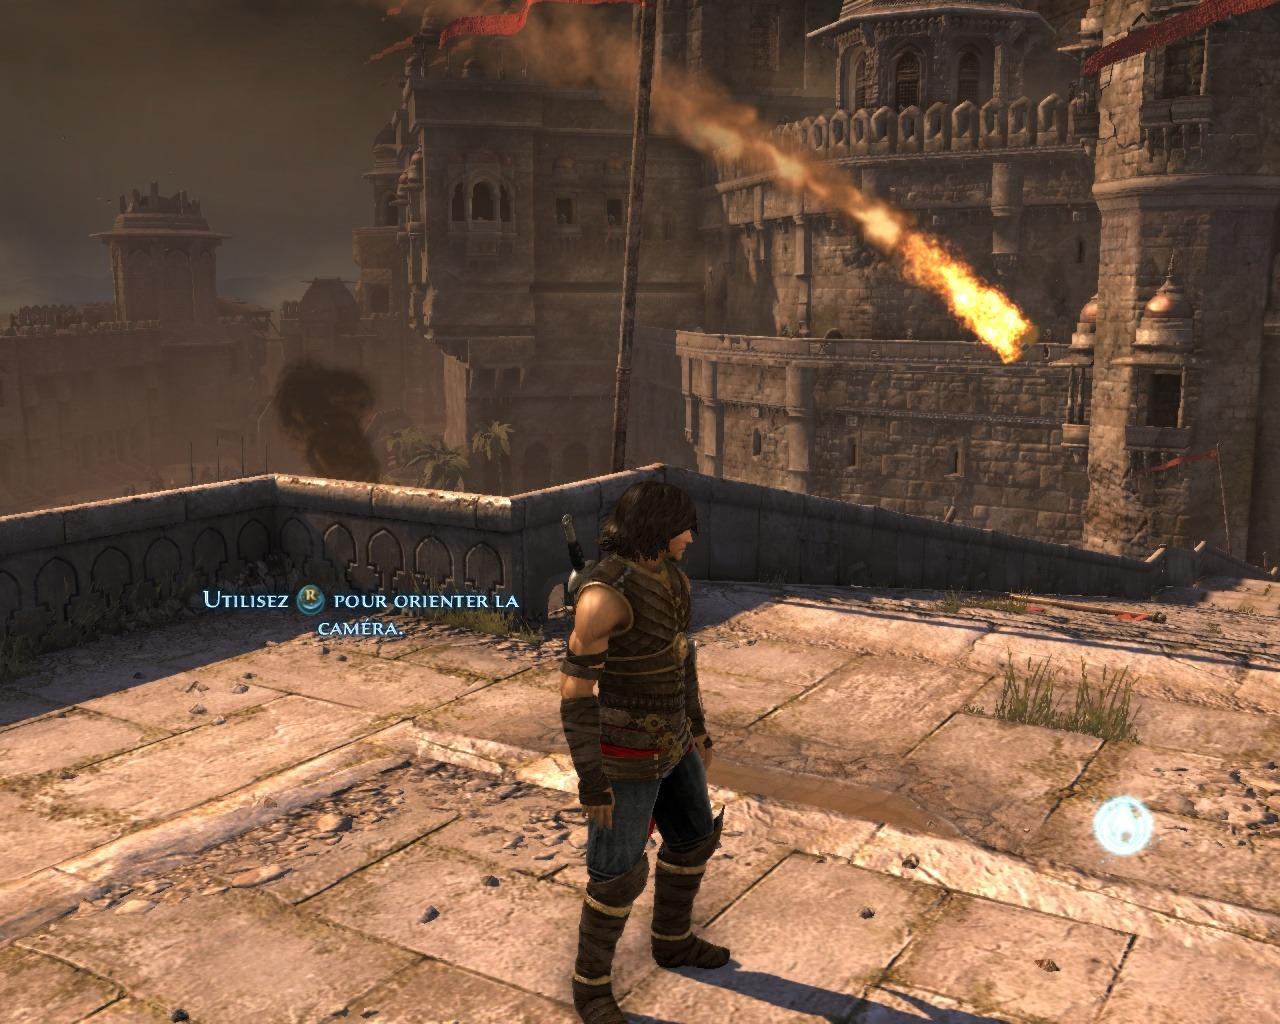 prince-of-persia-les-sables-oublies-pc-075.gif